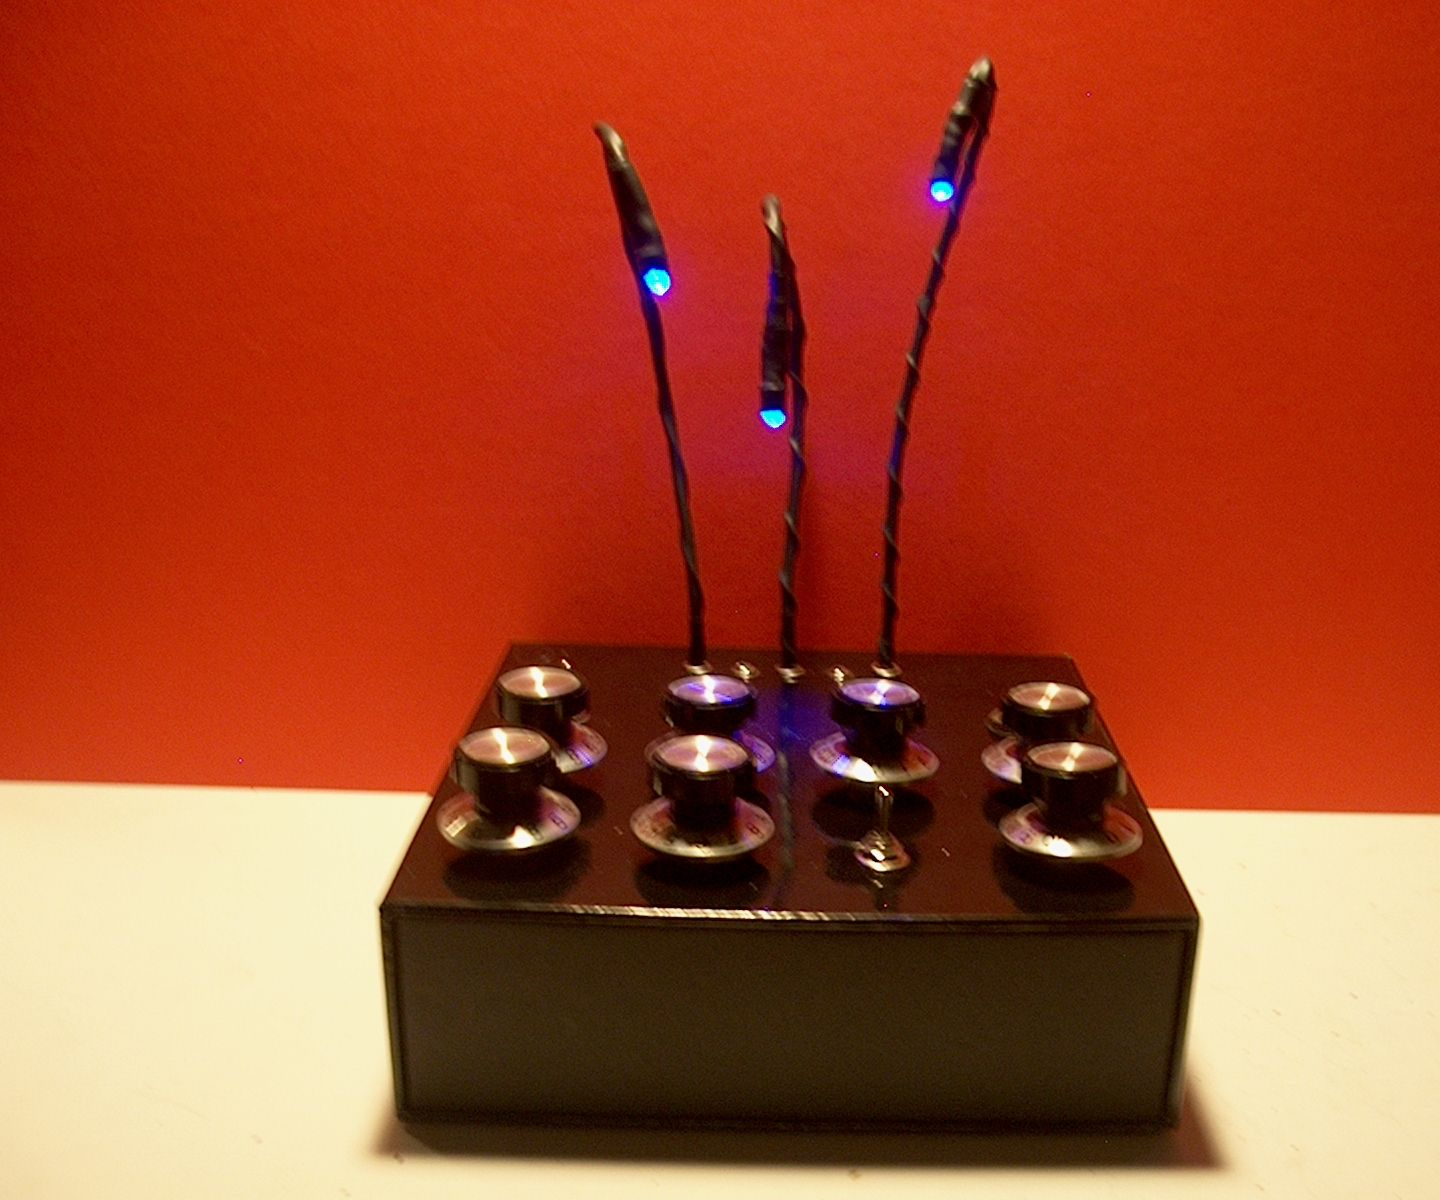 Building the Blinquencer- a light controlled random music box